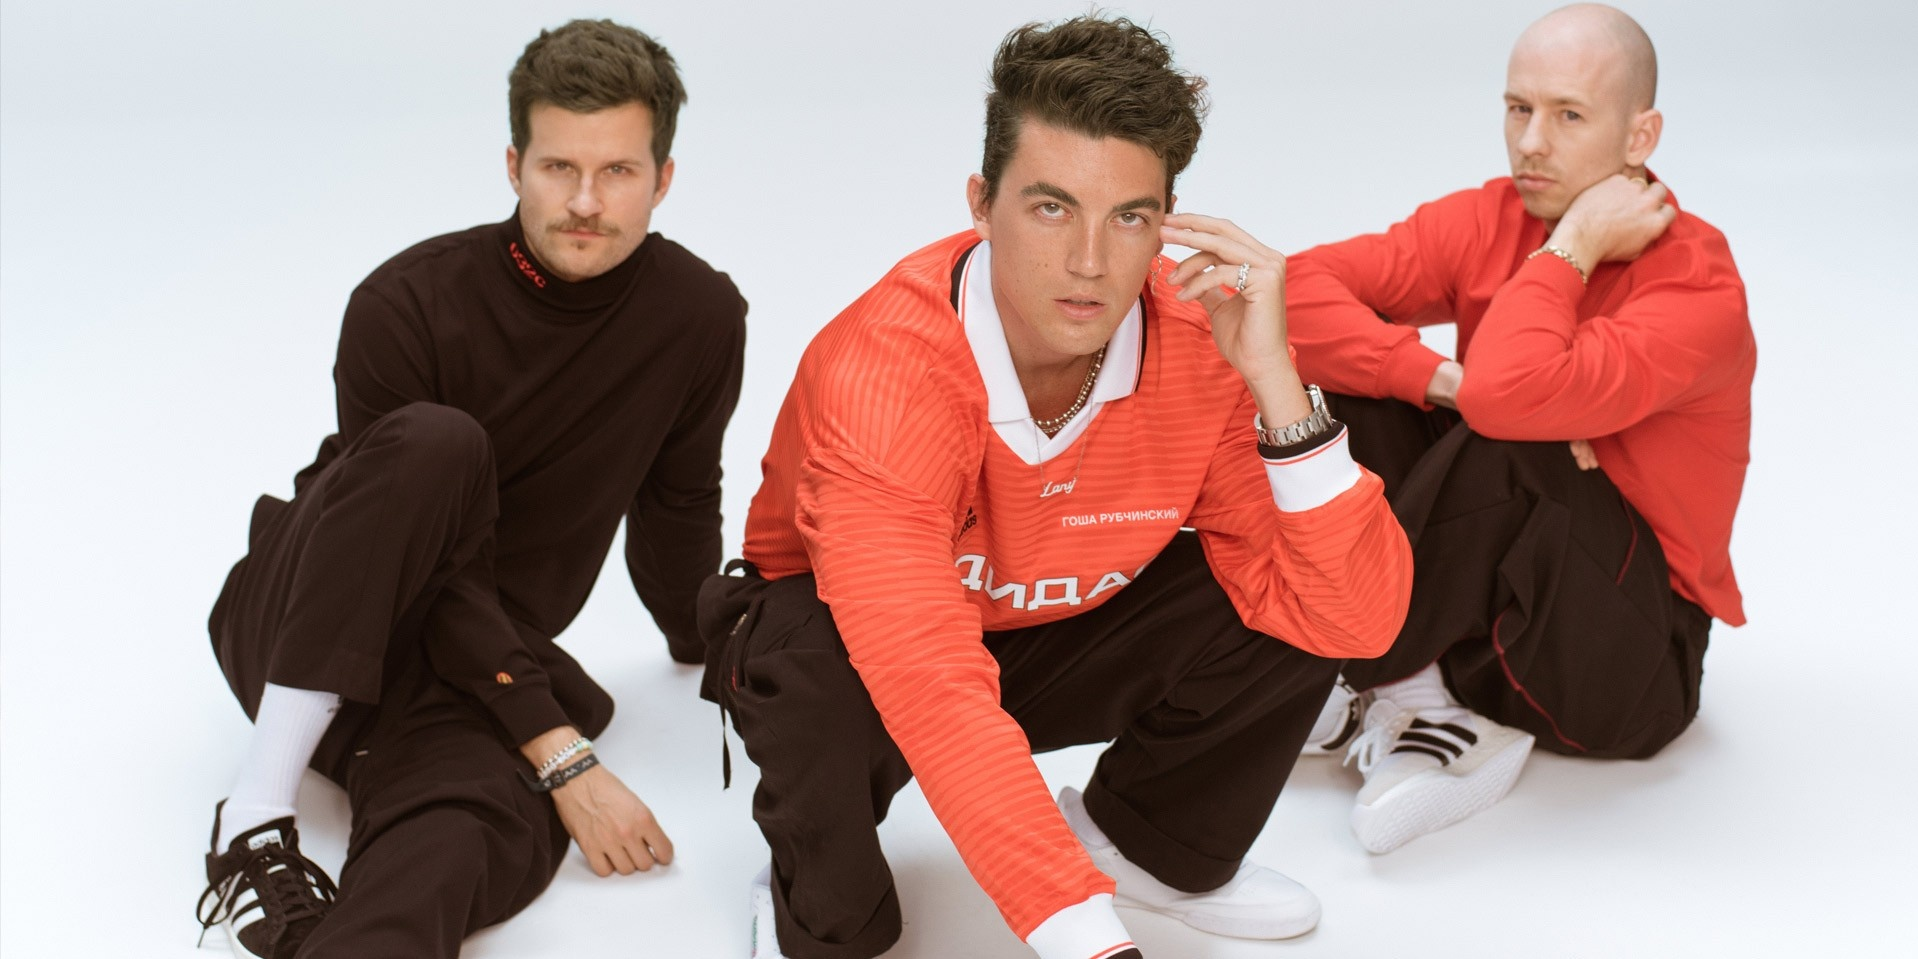 LANY drop lyric video for new hopeful single 'Thru These Tears' – watch